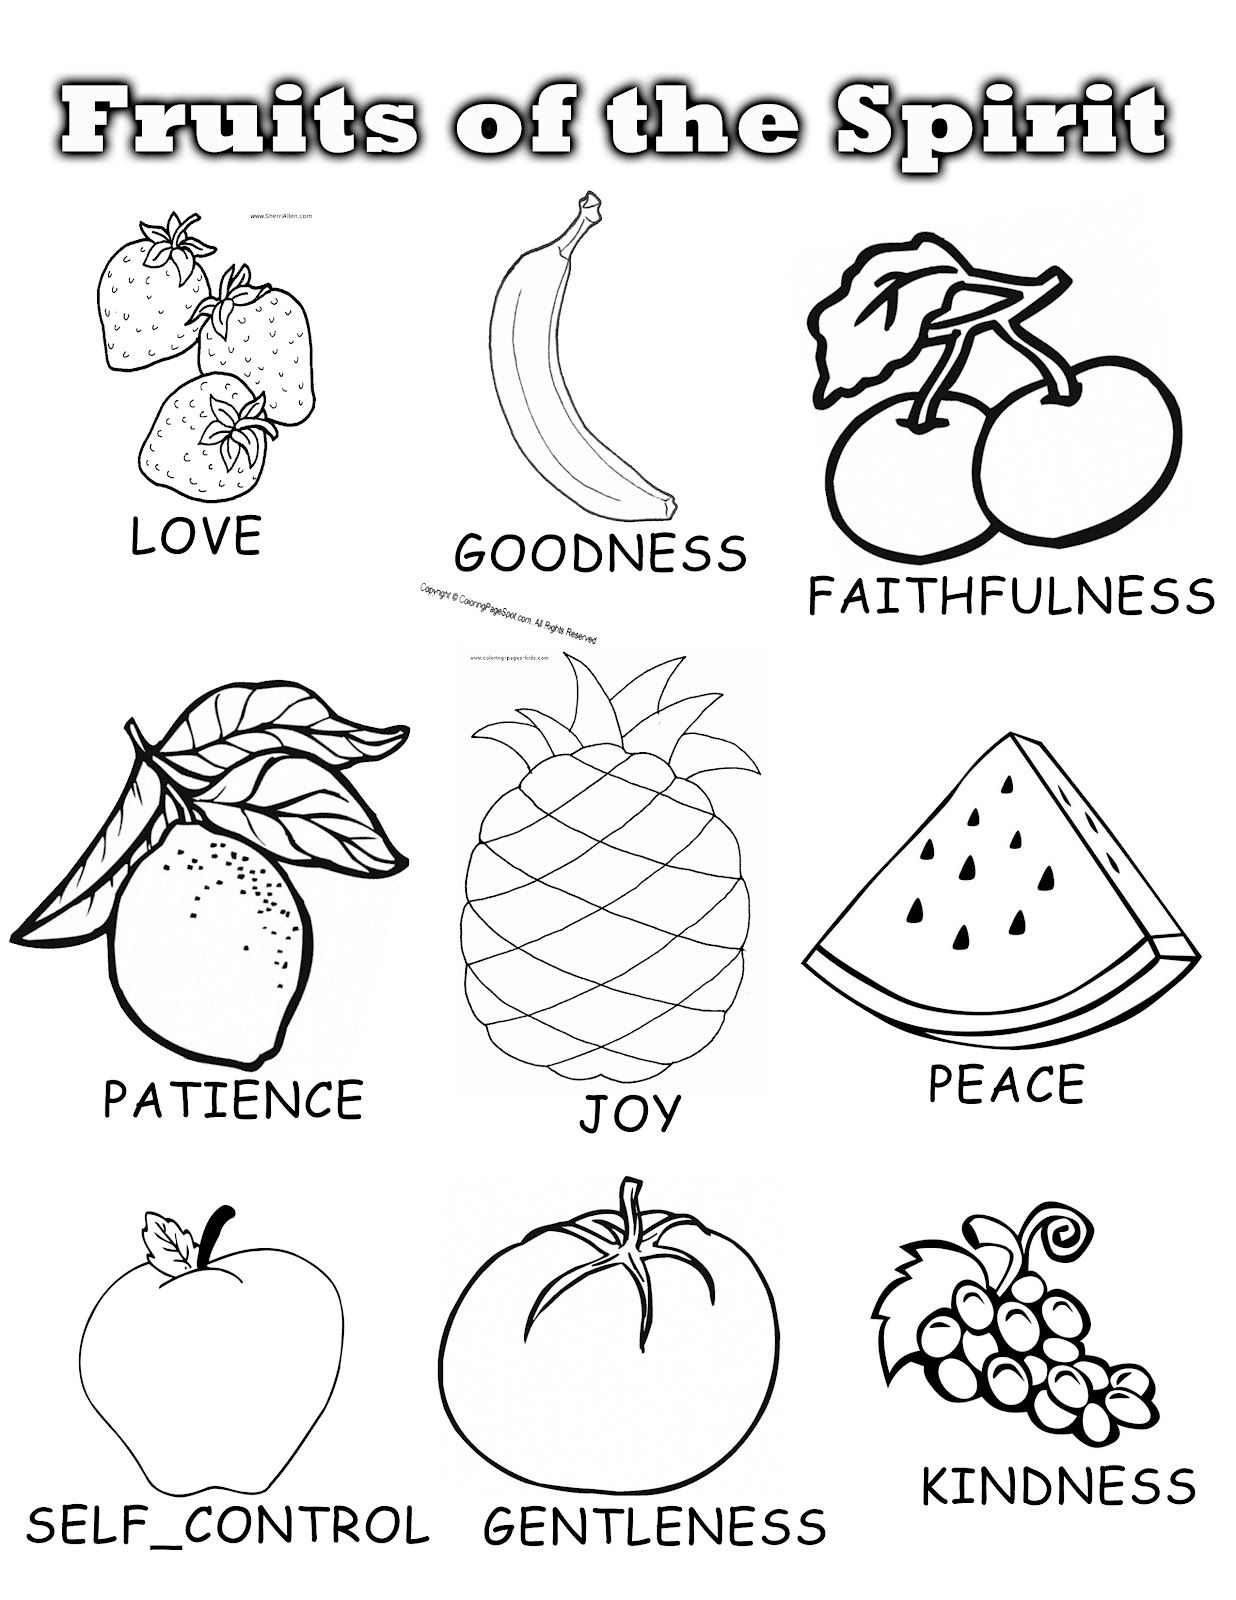 Coloring Pages : Fruit Ofe Spirit Coloring Book Printable Pages For - Fruit Of The Spirit Free Printable